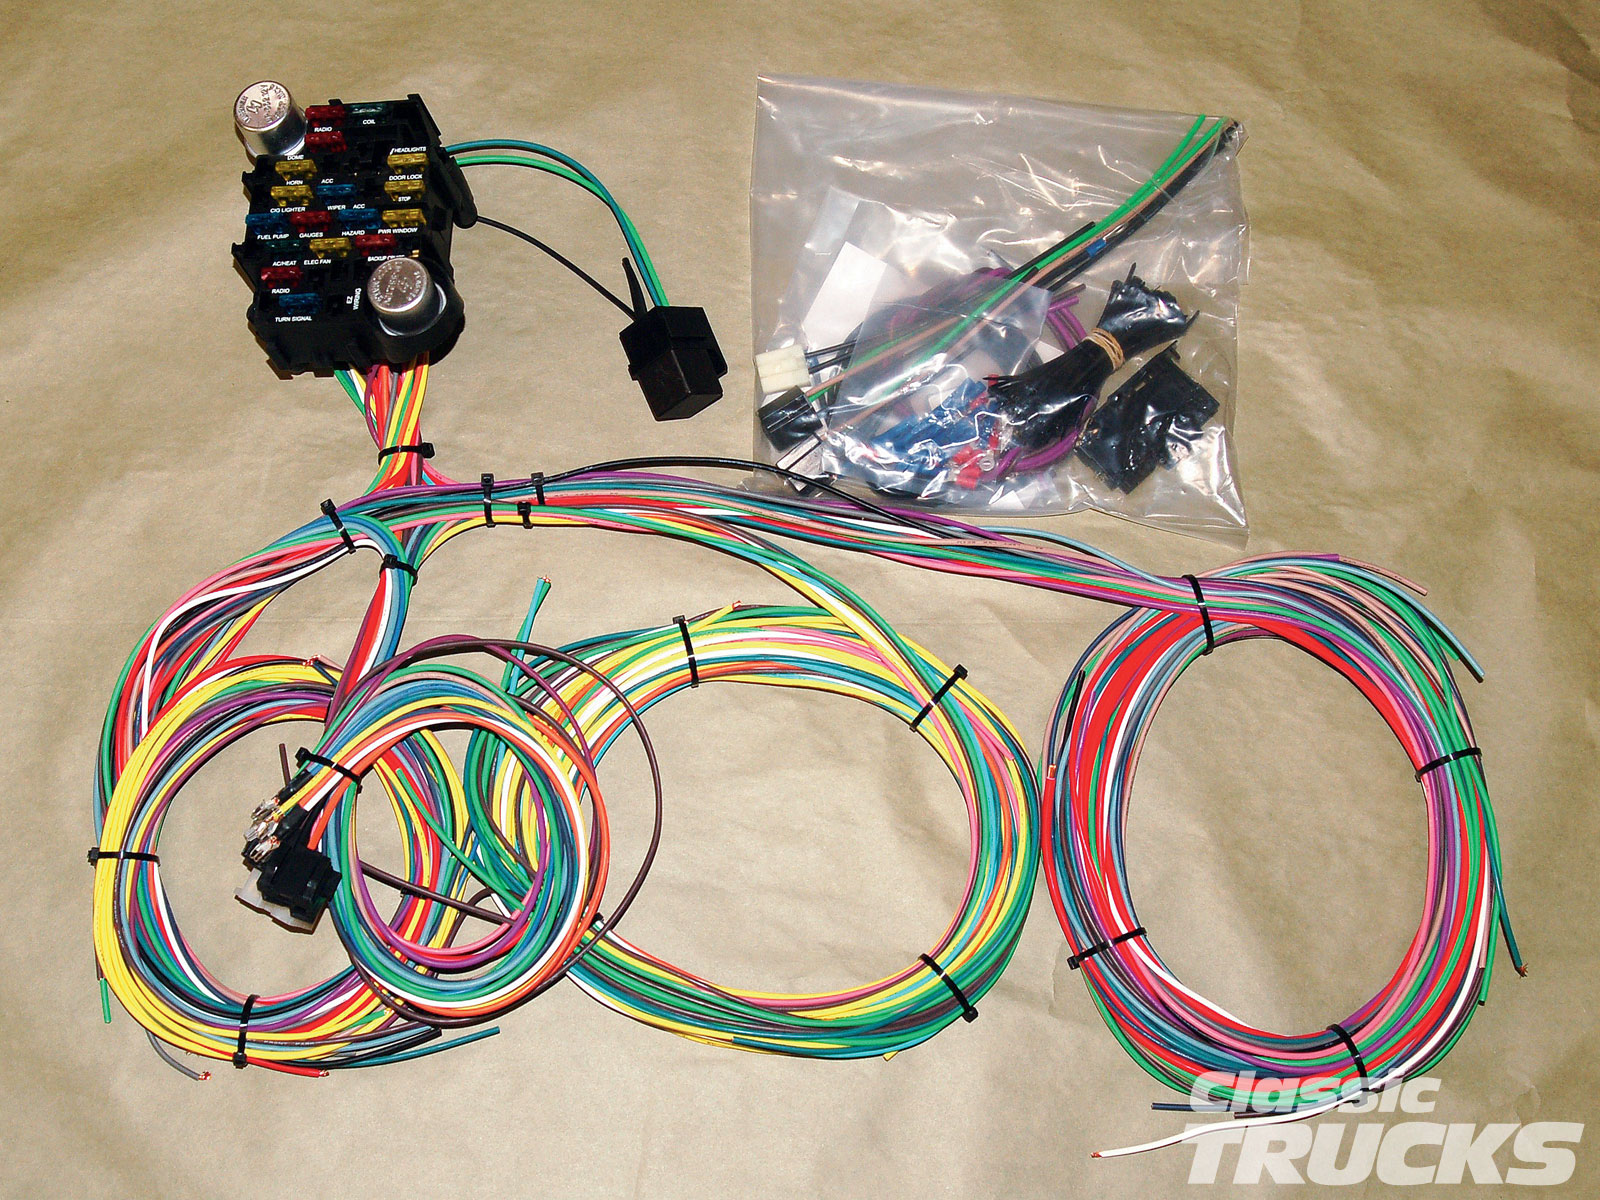 1010clt 02 o aftermarket wiring harness install kit?resize\\\=665%2C499 painless wiring harness australia tamahuproject org universal wiring harness australia at edmiracle.co